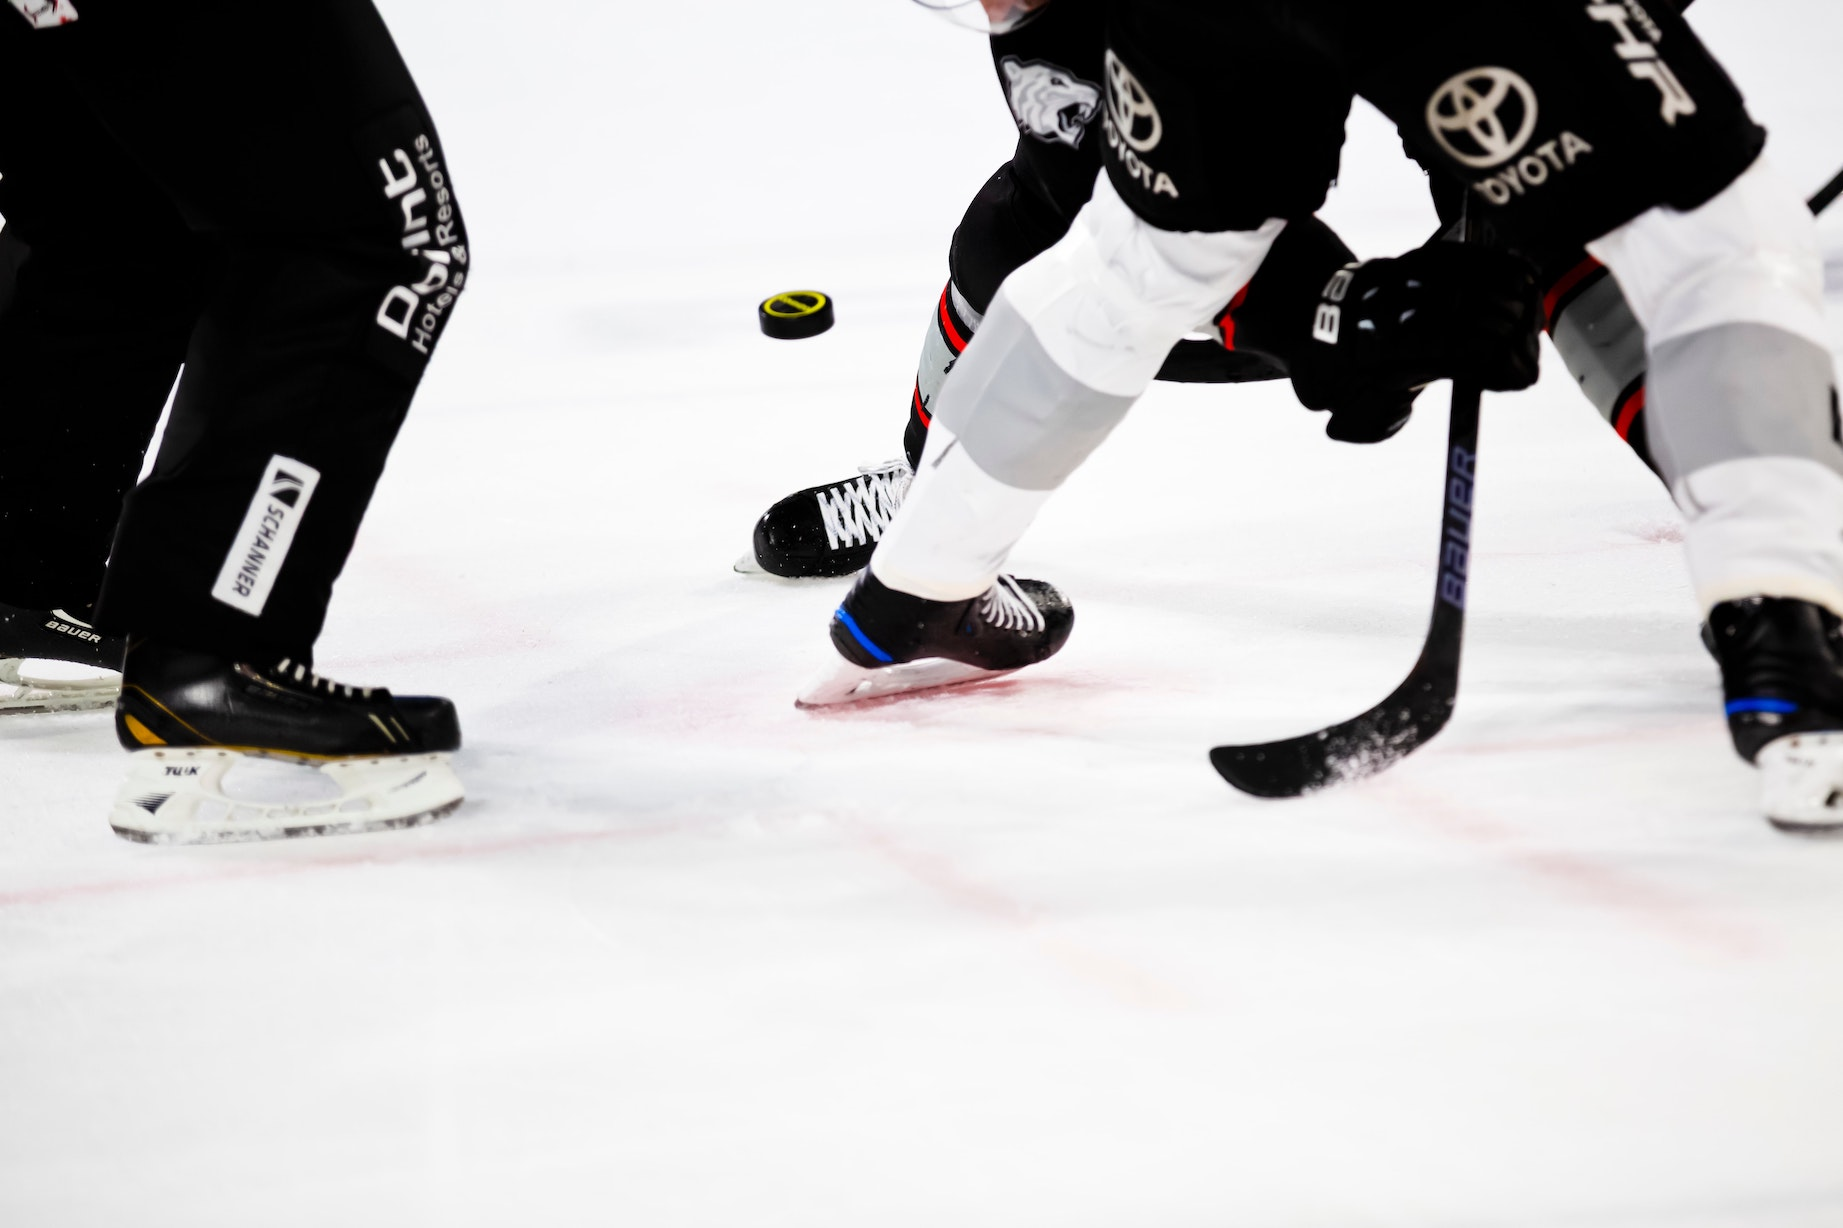 A referee drops a puck between two hockey players waiting to face off.